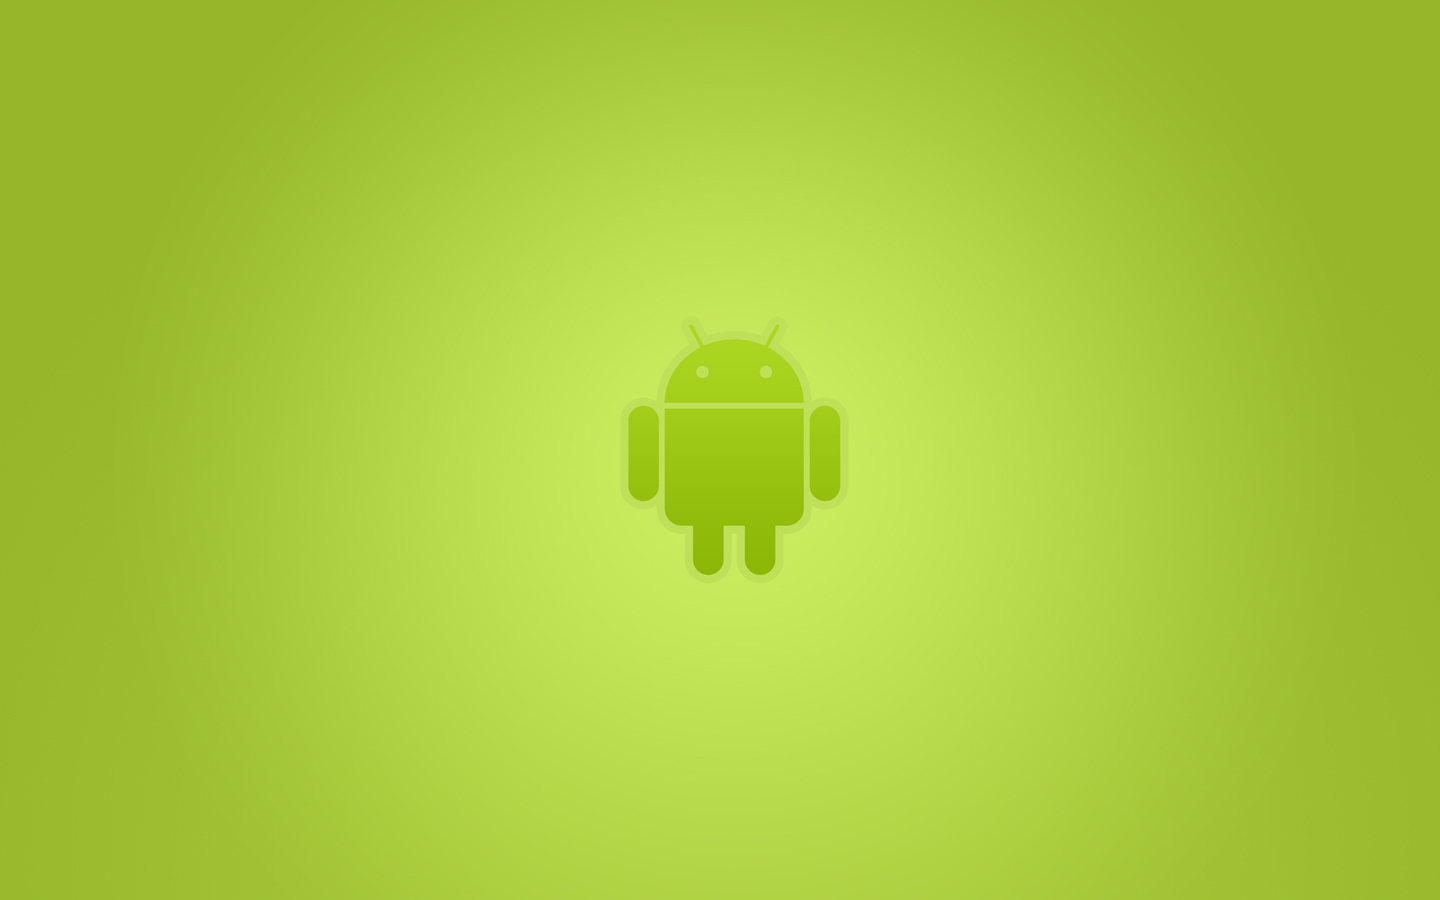 Android 7 inch tablet wallpaper size 1440x900